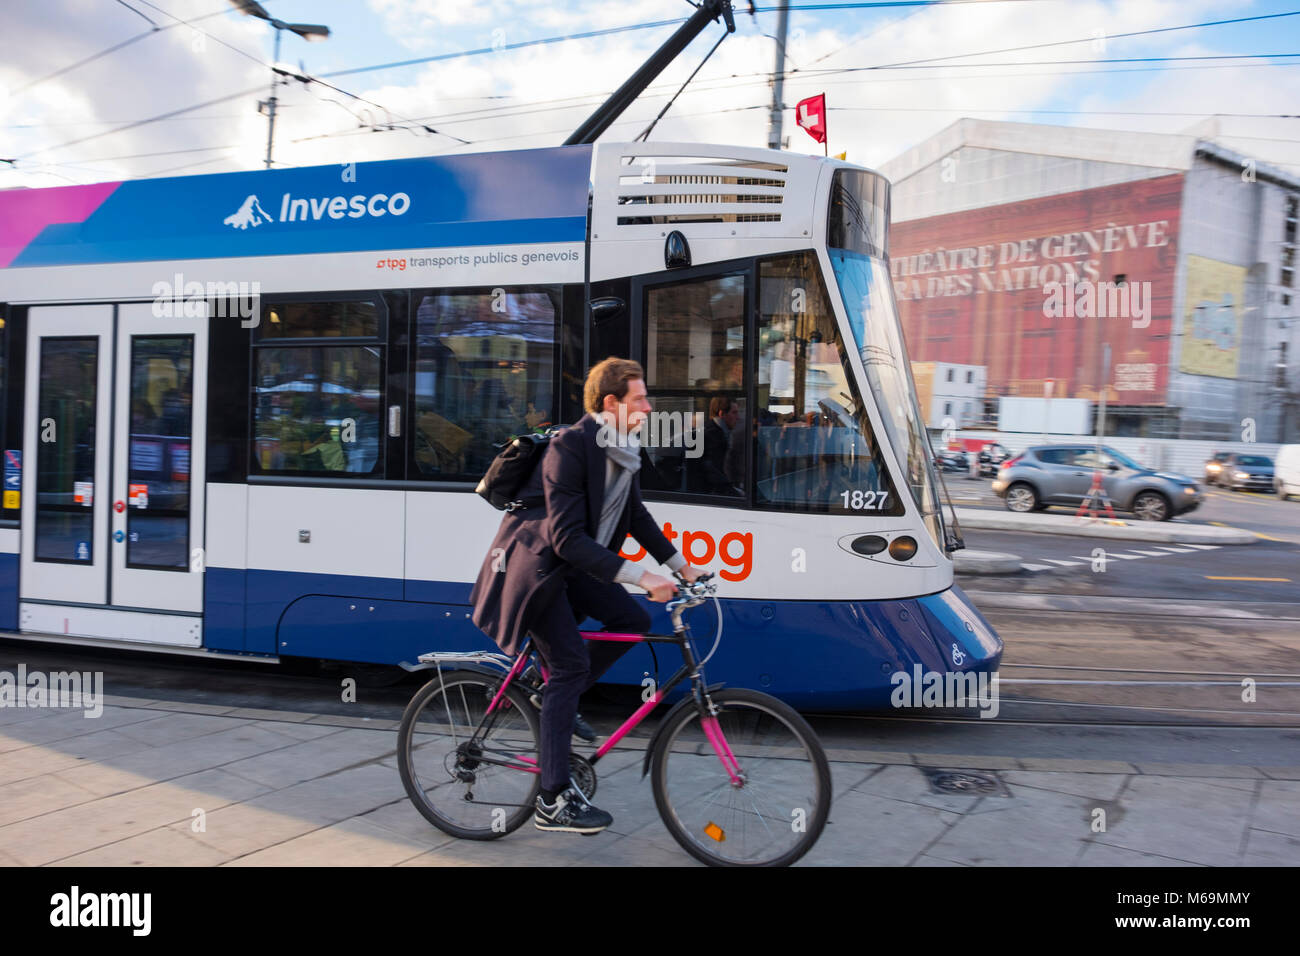 Public transport, tram and cyclist on bicycle. Genève Suisse. Geneva. Switzerland. Europe - Stock Image